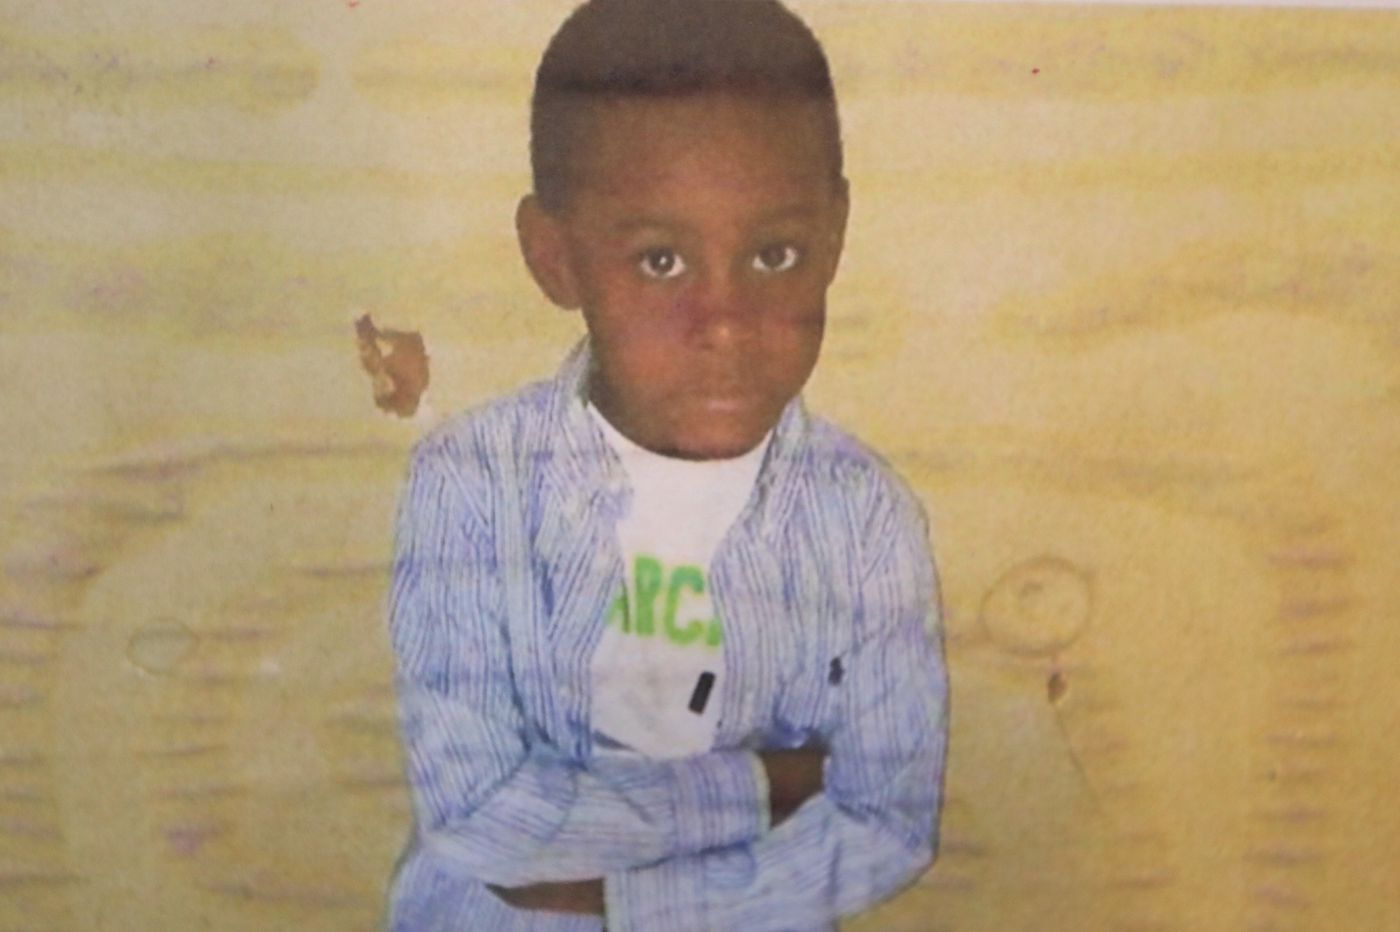 7-year-old who died after fall from SEPTA train remembered for entrepreneurial spirit